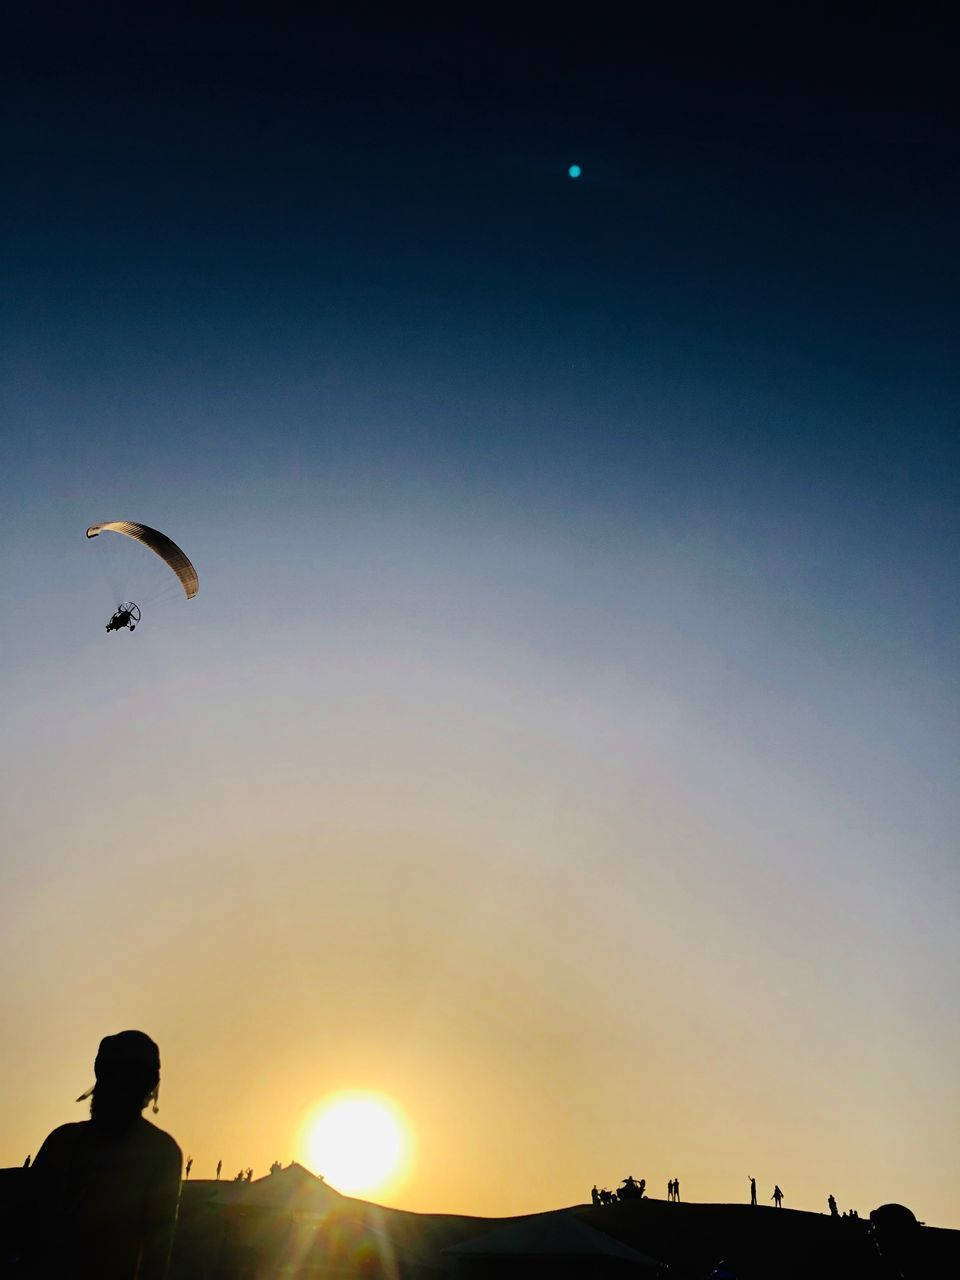 sky, real people, sunset, leisure activity, extreme sports, one person, lifestyles, parachute, silhouette, adventure, sport, flying, nature, mid-air, sun, paragliding, beauty in nature, unrecognizable person, copy space, outdoors, lens flare